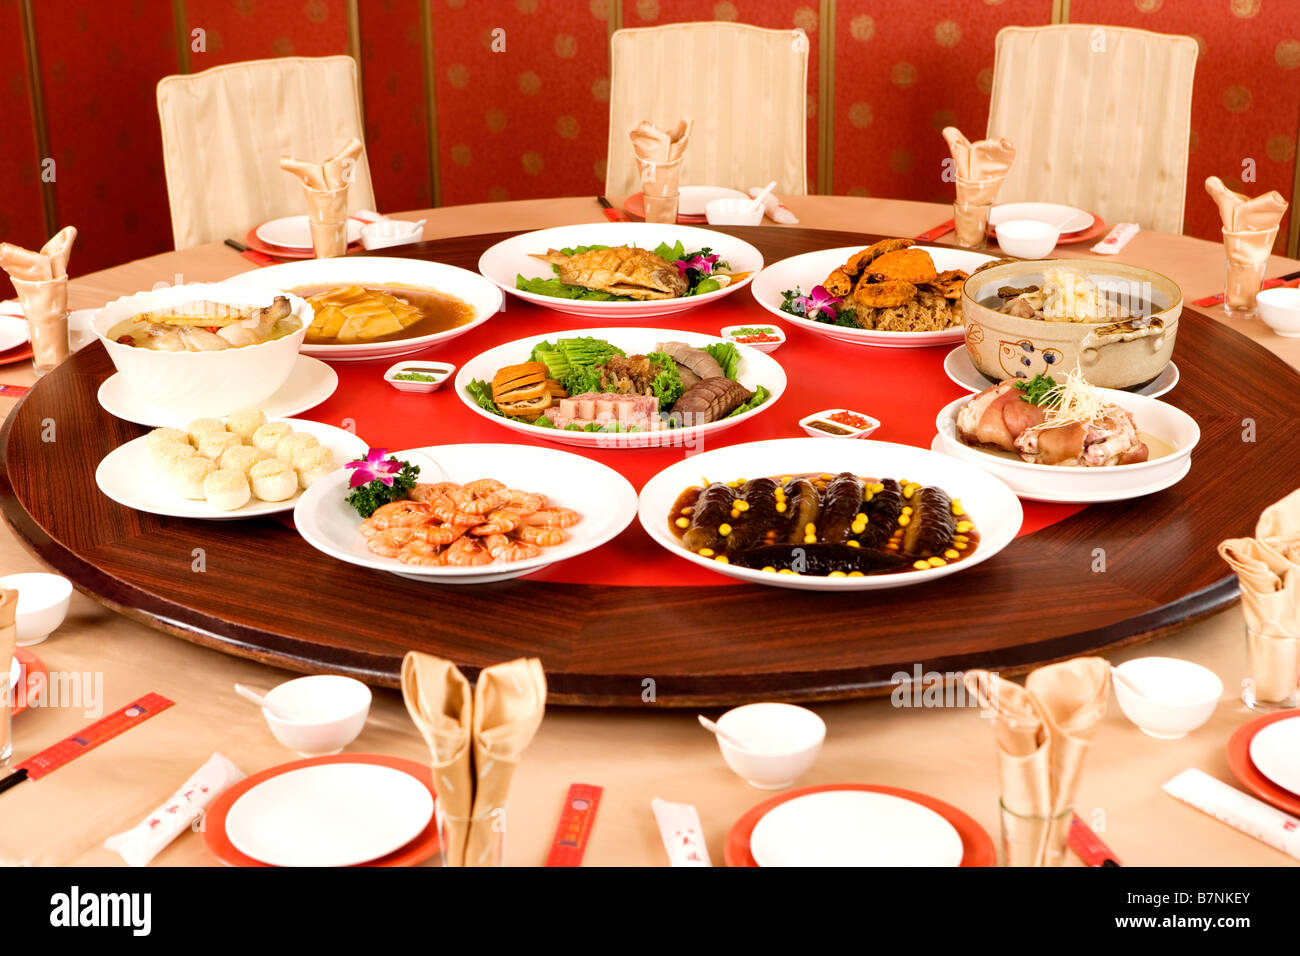 Alamy & Chinese dishes at dining table Stock Photo: 21989267 - Alamy